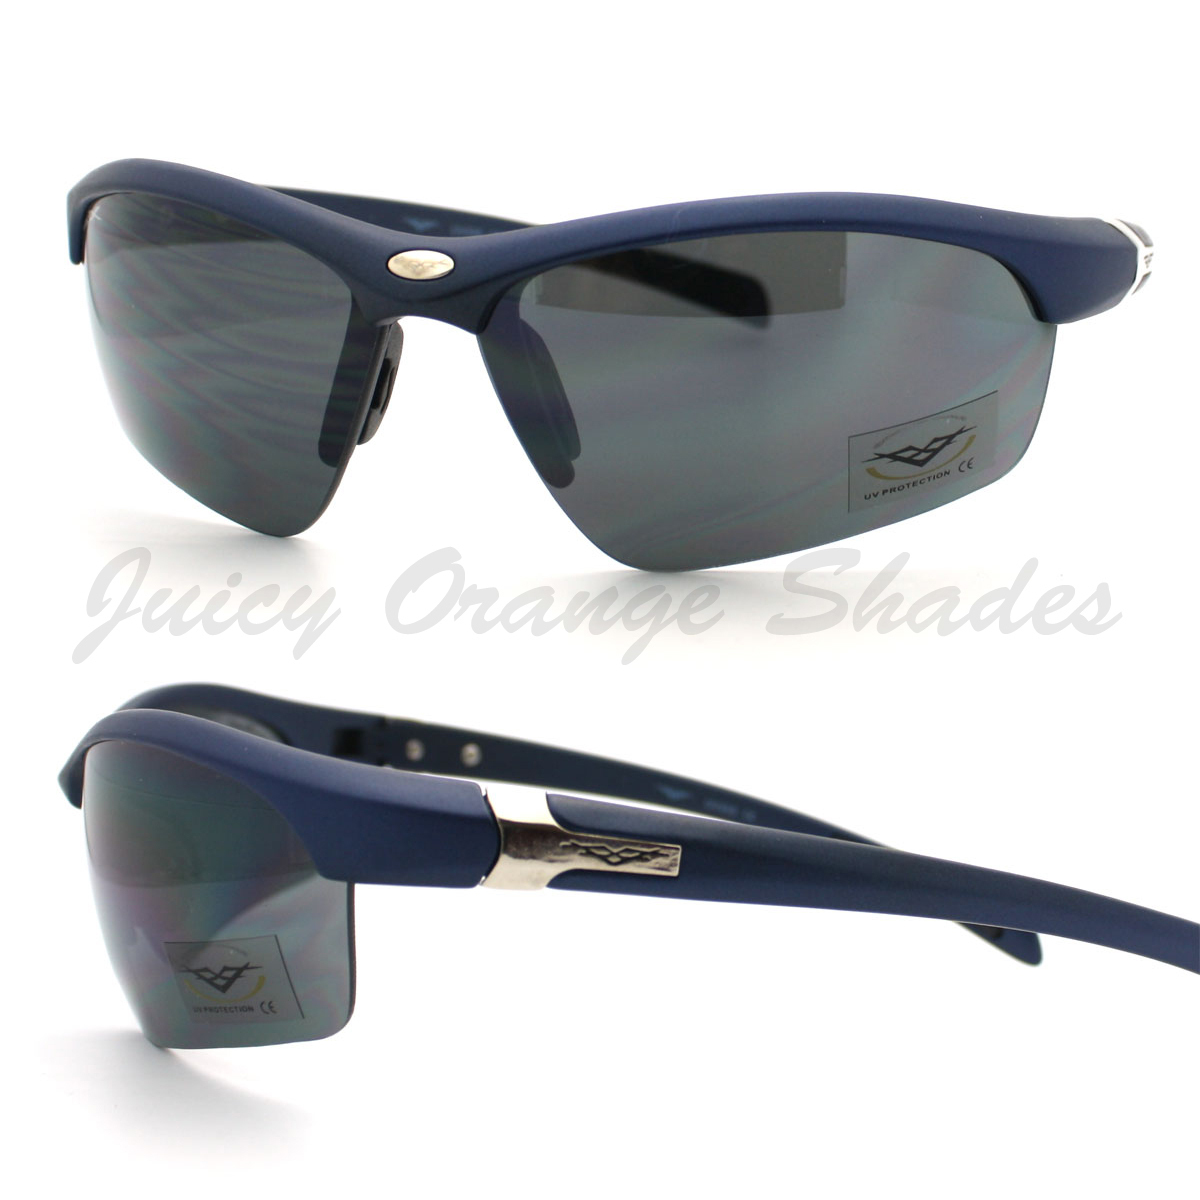 Primary image for All Sports Sunglasses Mens Half Rim Stylish Comfort Eyewear NAVY BLUE